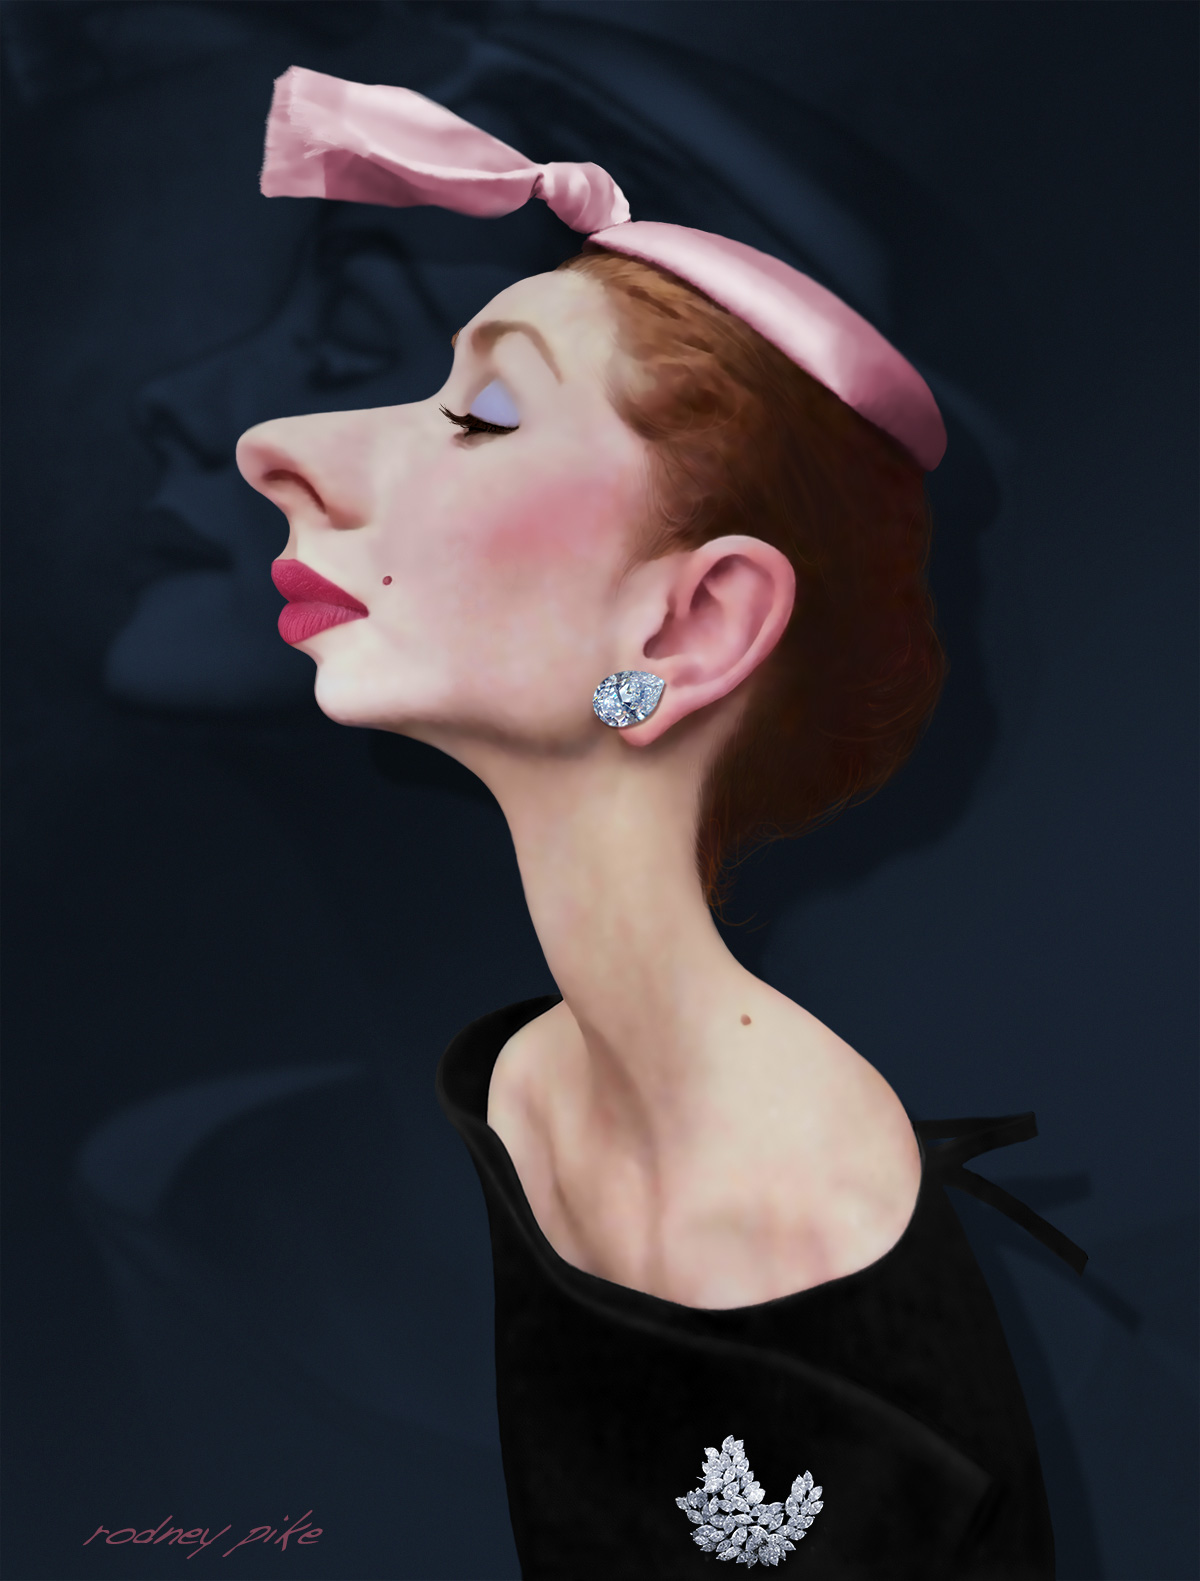 Ginger - A Female Caricature Study by RodneyPike